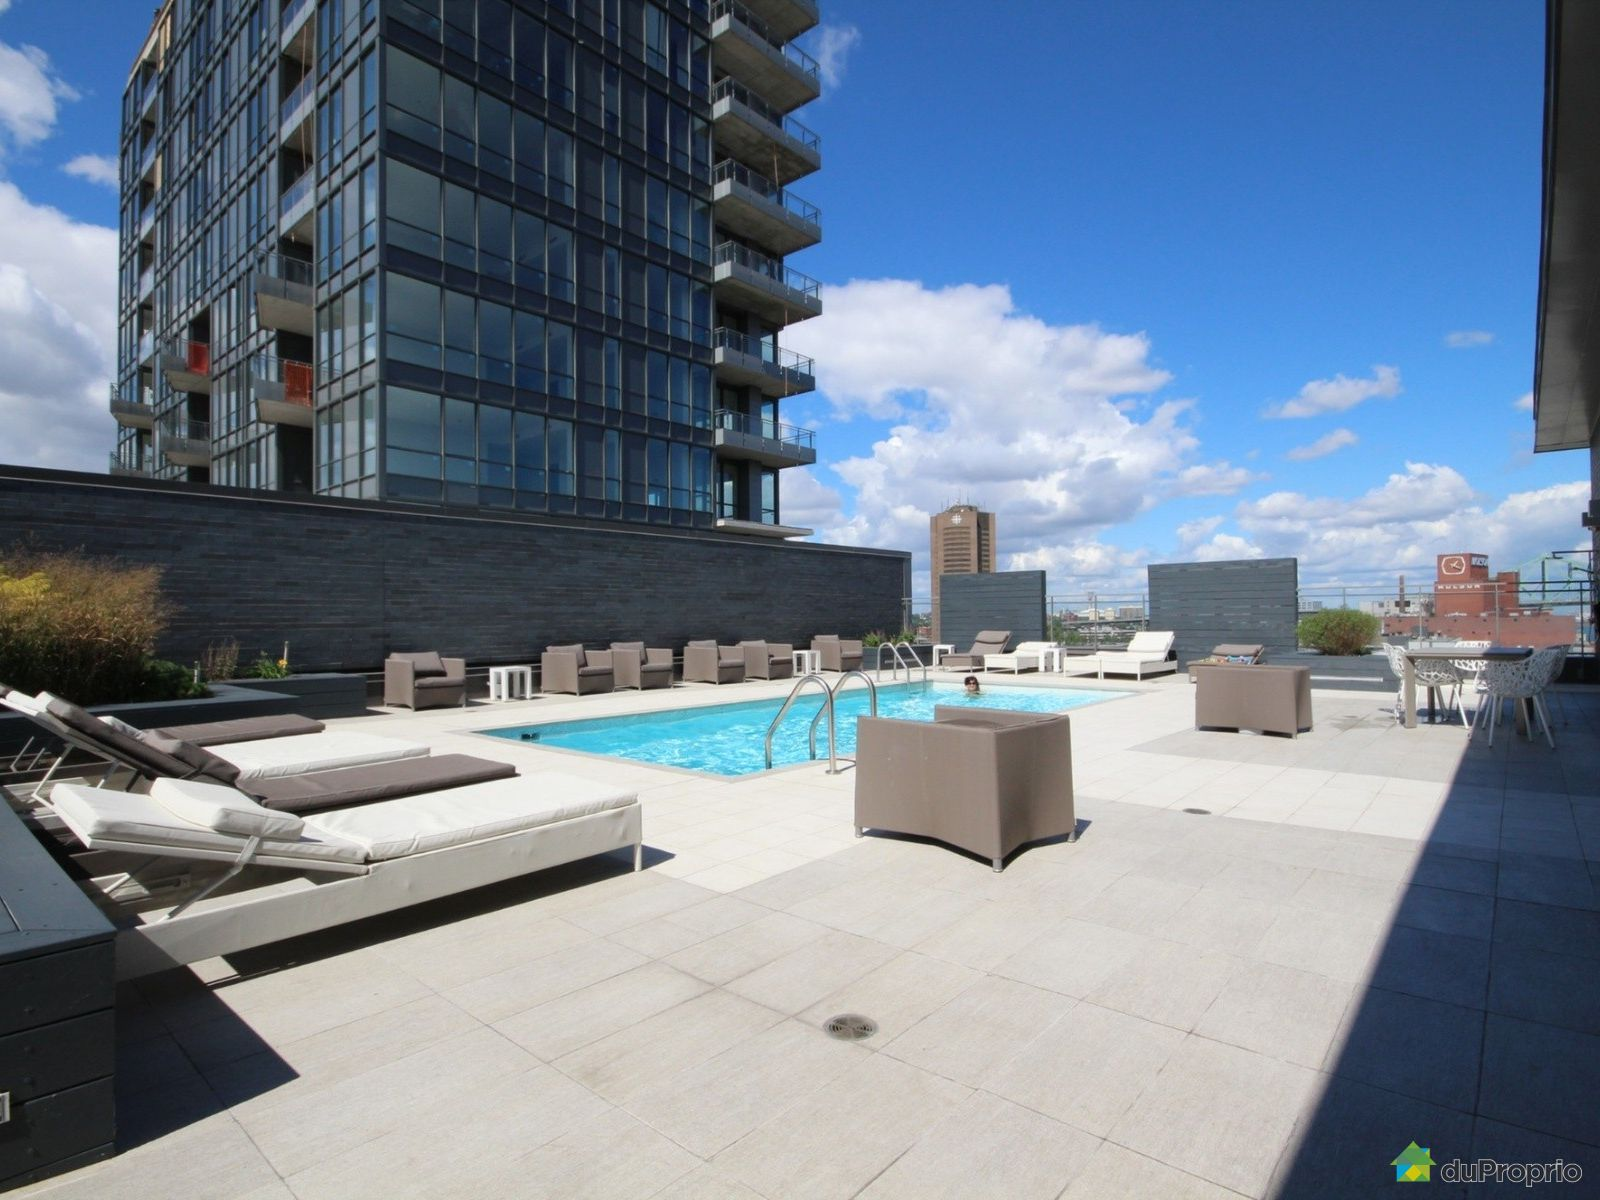 Condo for sale in montreal 904 901 rue de la commune e for La downtown condo for sale